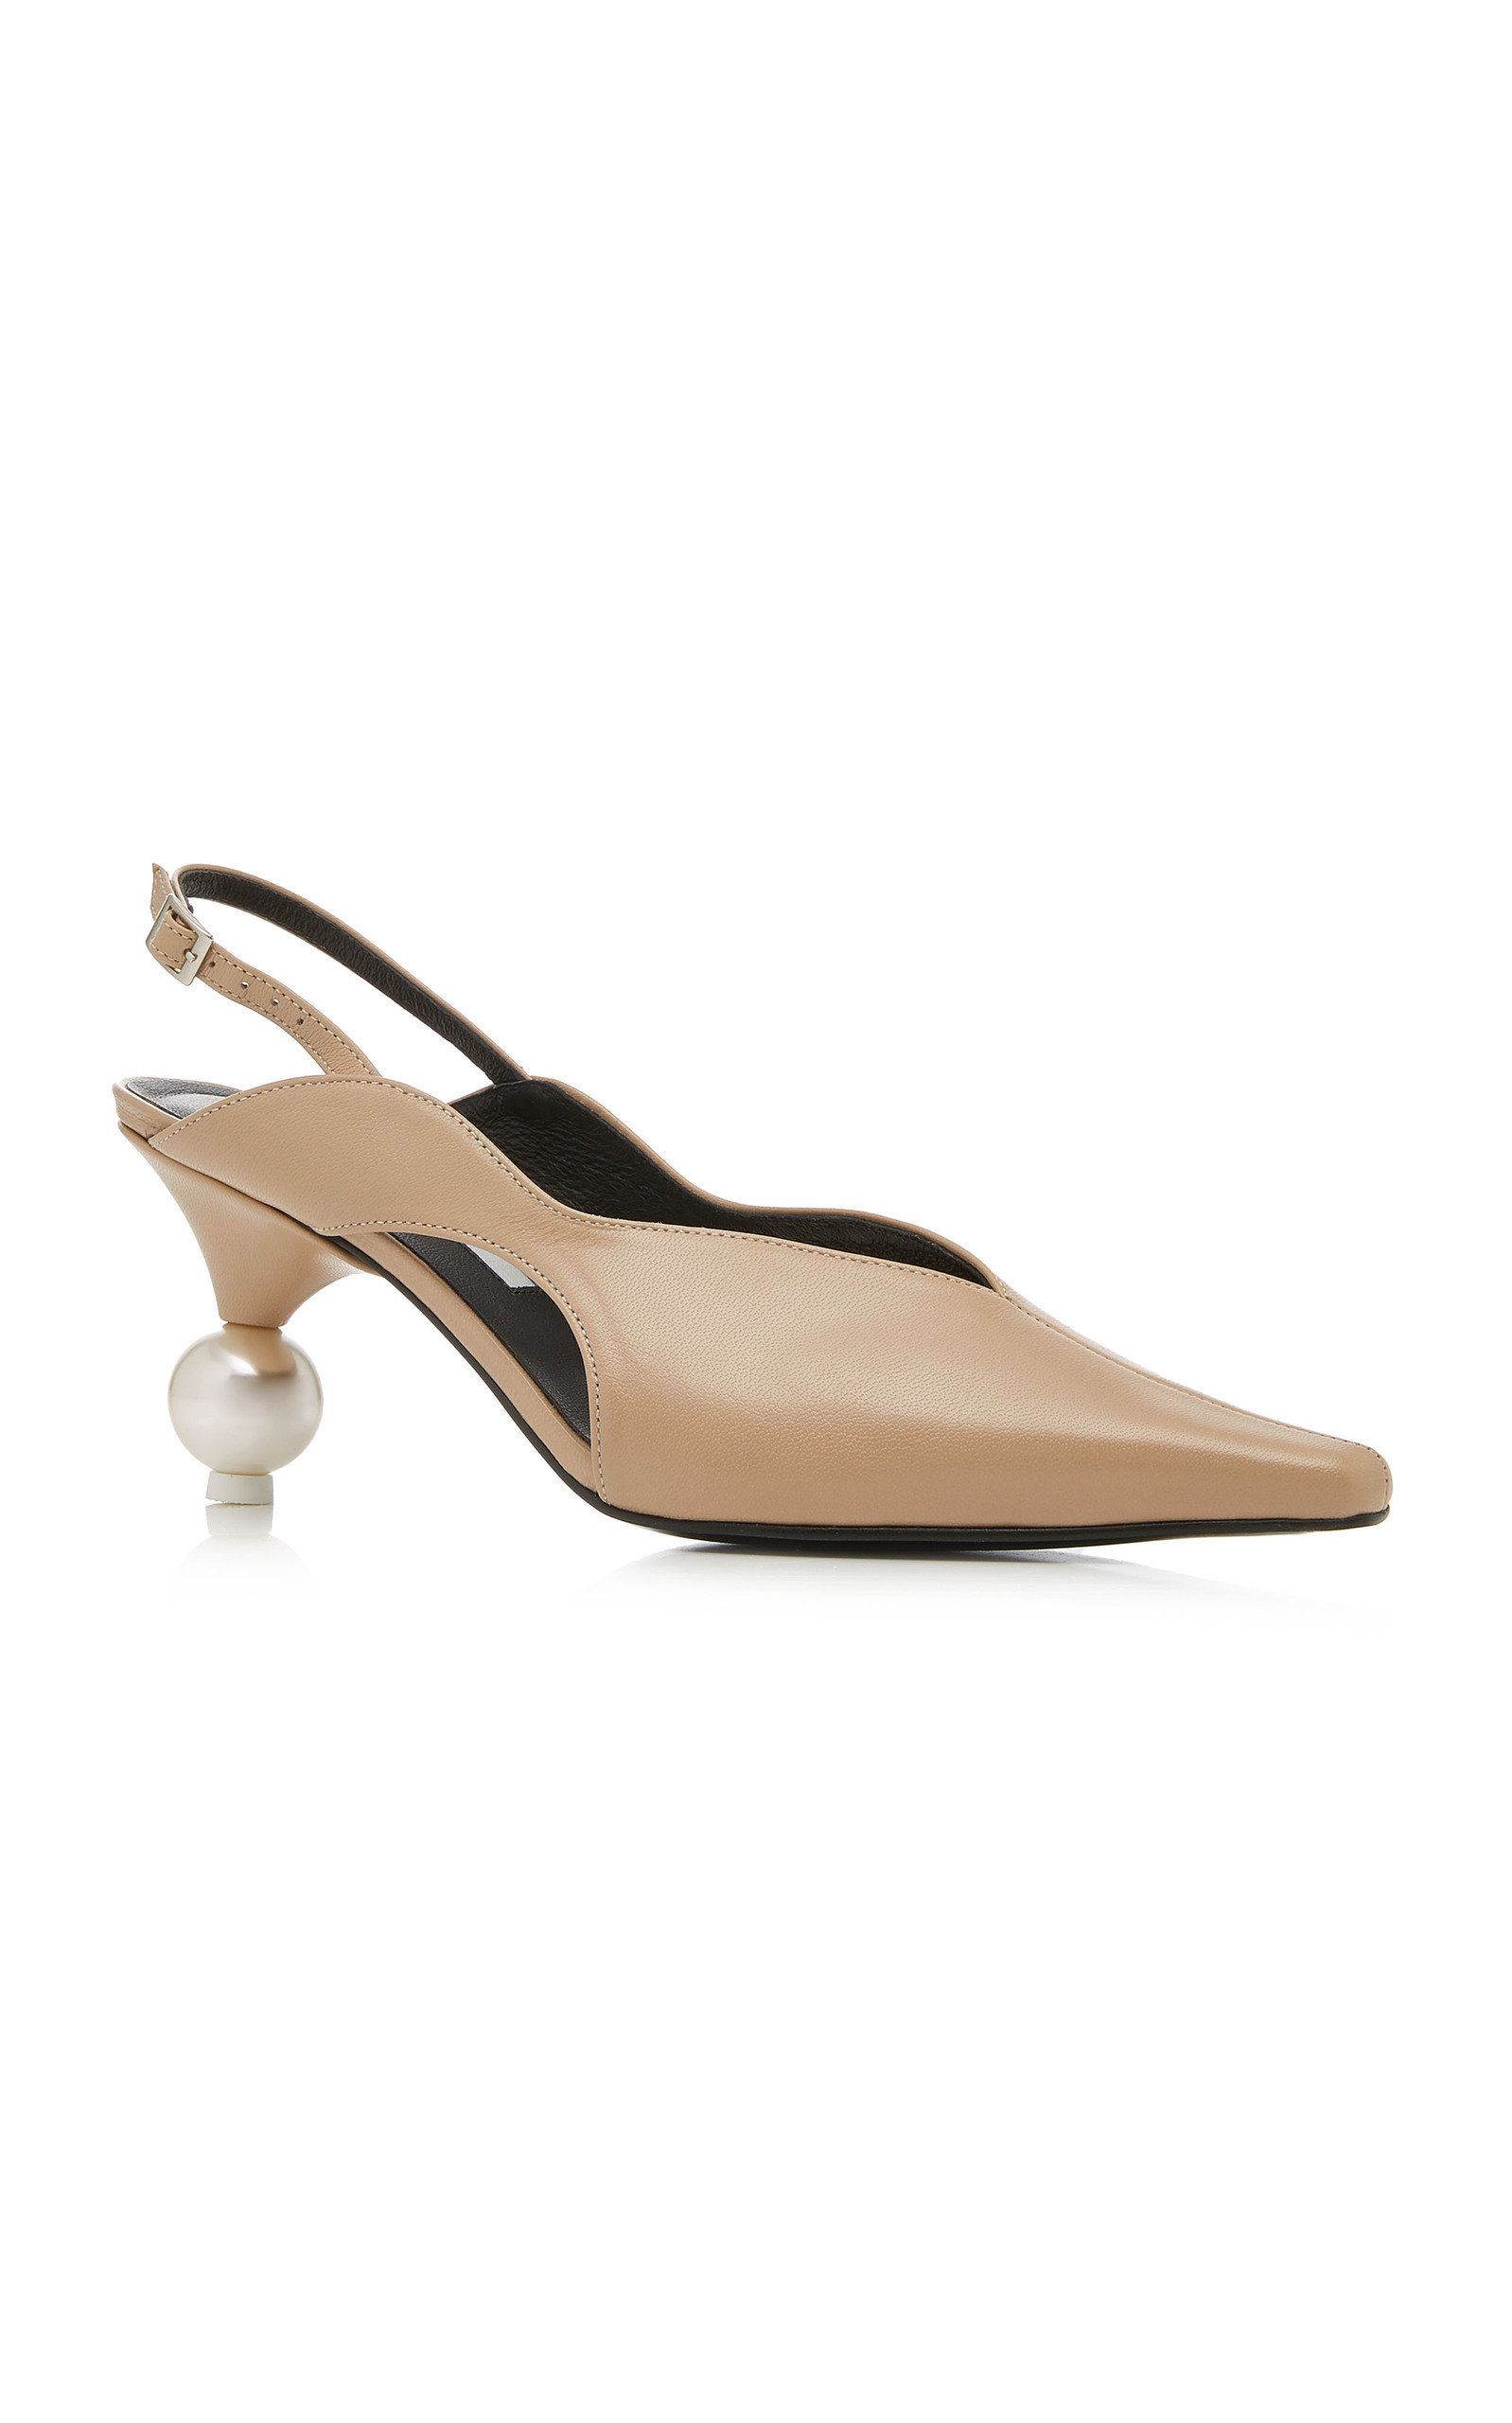 6029a45d747 Doreen Embellished Slingback Pumps by YUUL YIE Now Available on Moda  Operandi